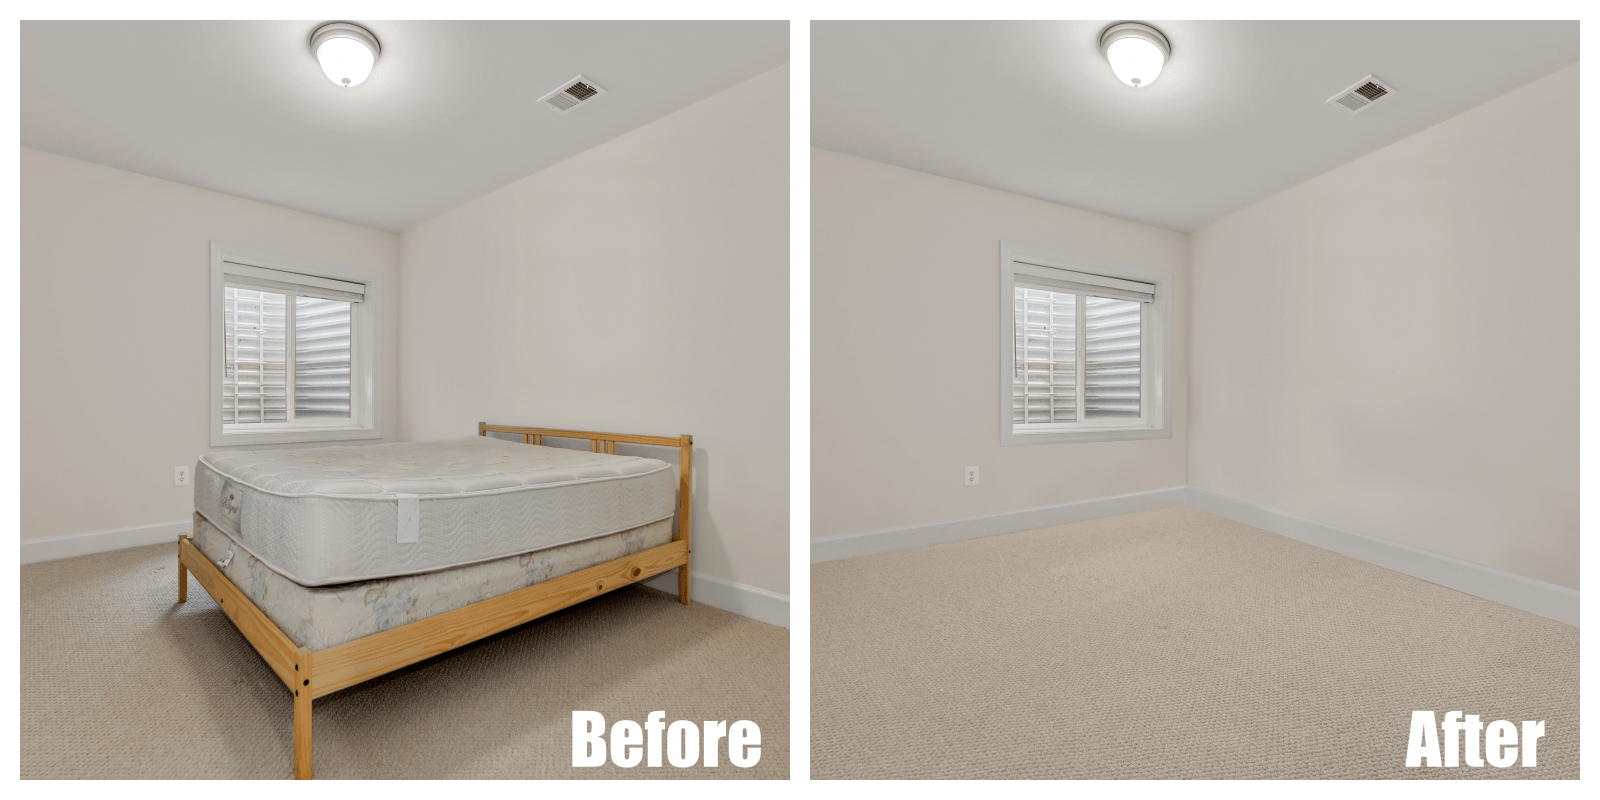 3 Reliable Editing Techniques of Removing Objects Inside the House